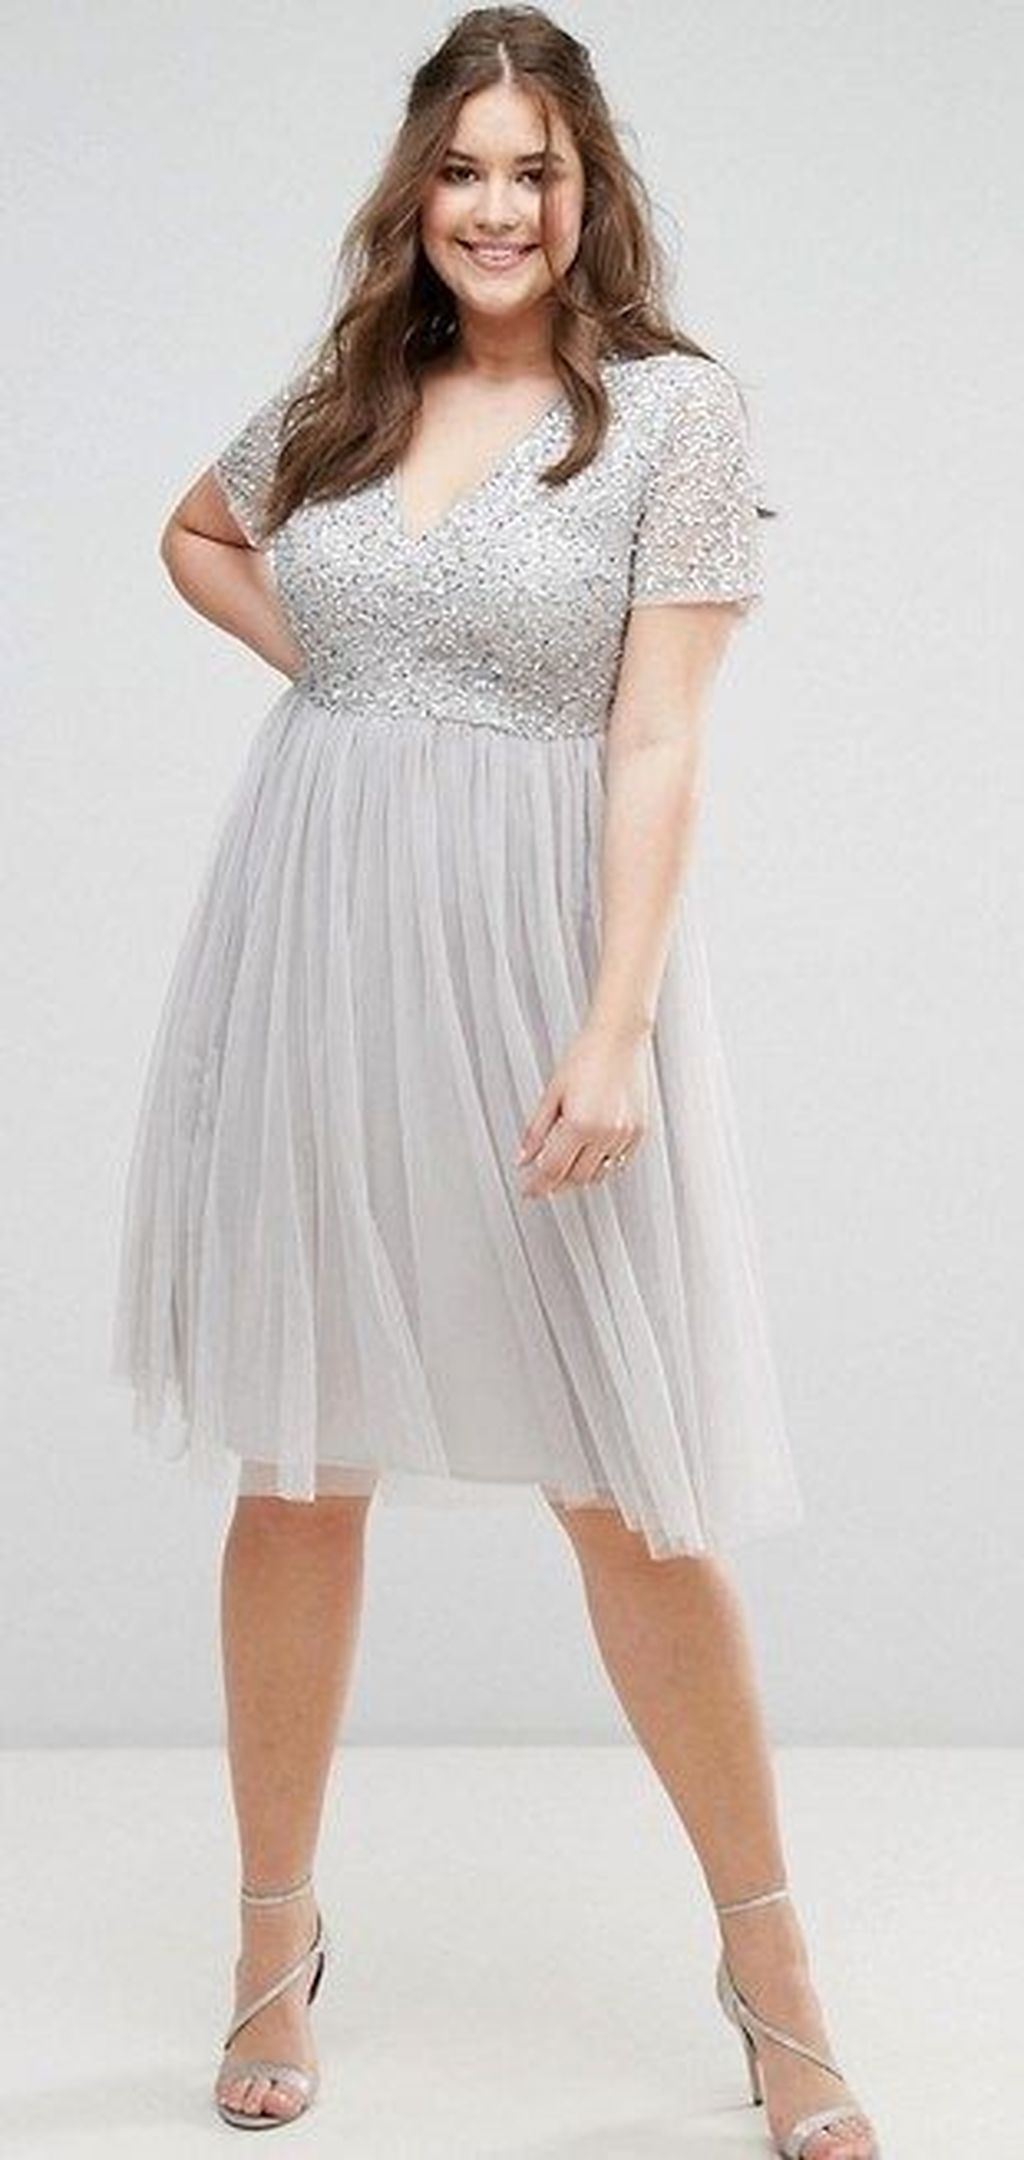 elegant winter white plus size outfits ideas wedding guest